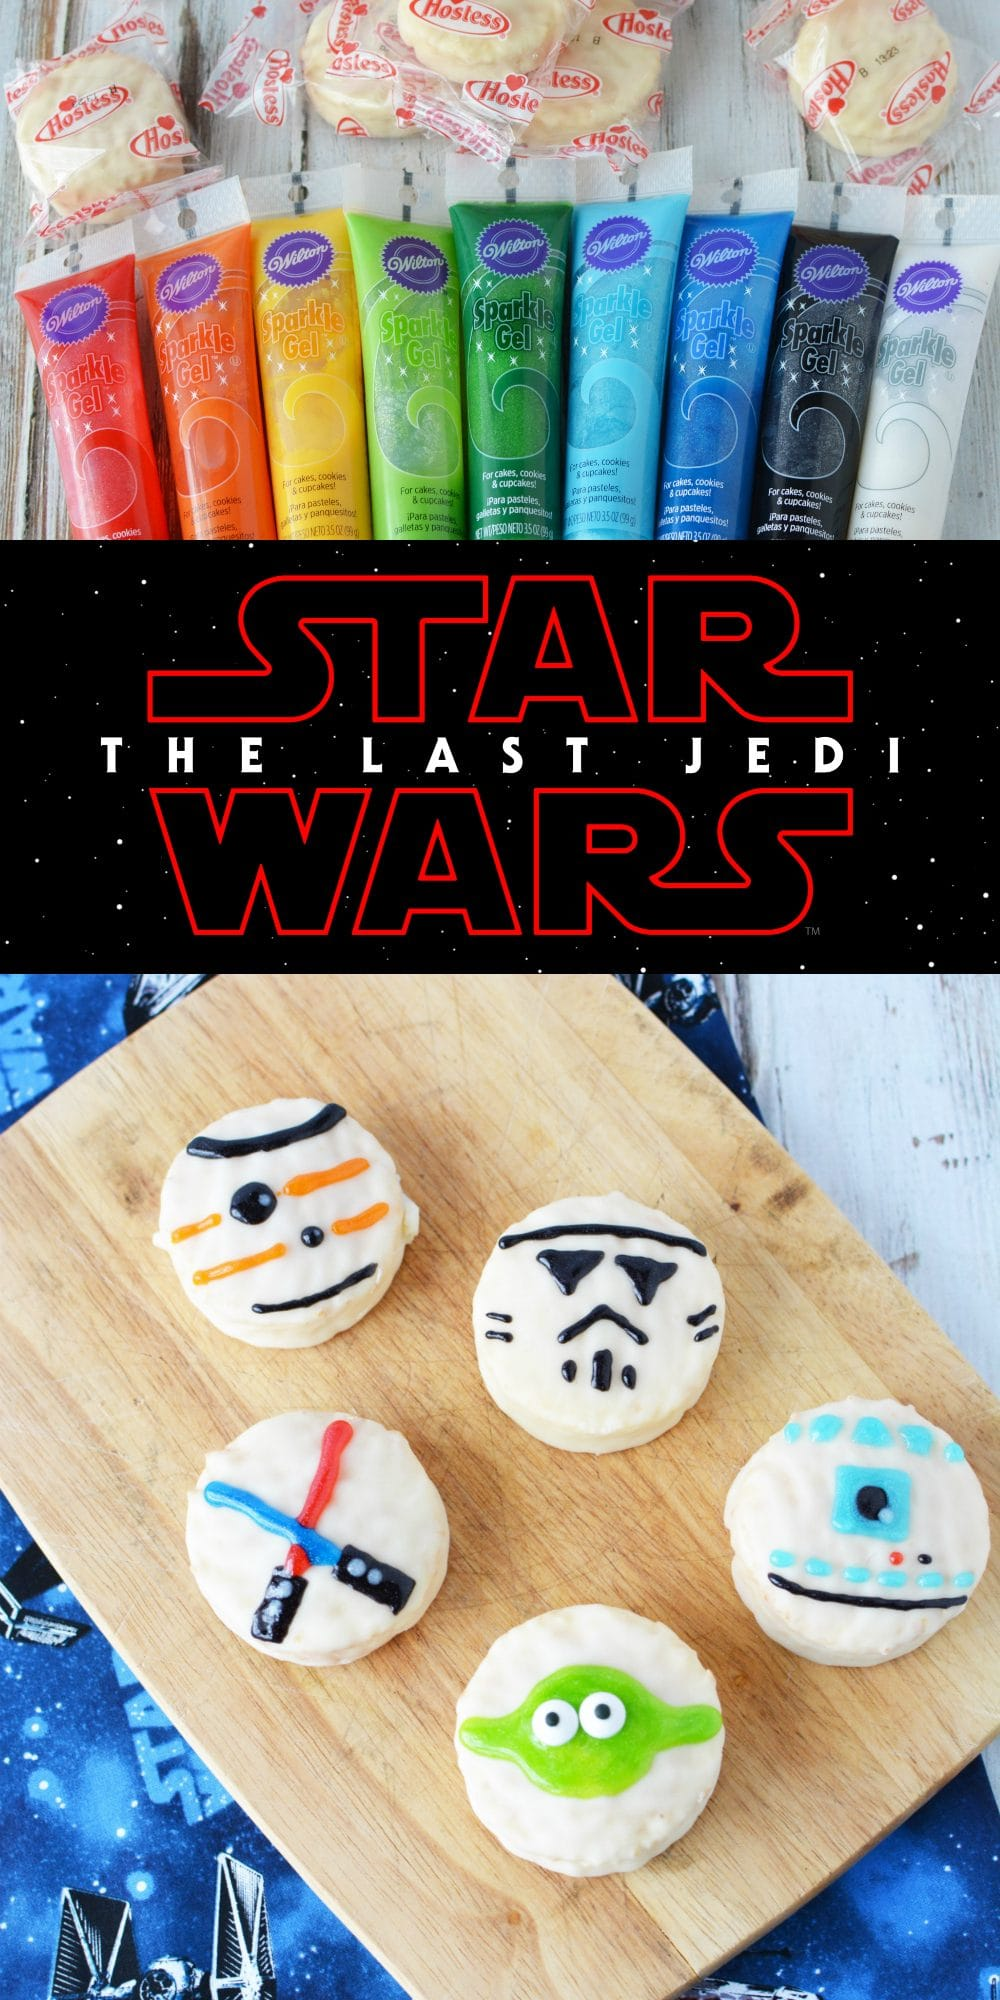 Star Wars Treats decorated Ding Dongs